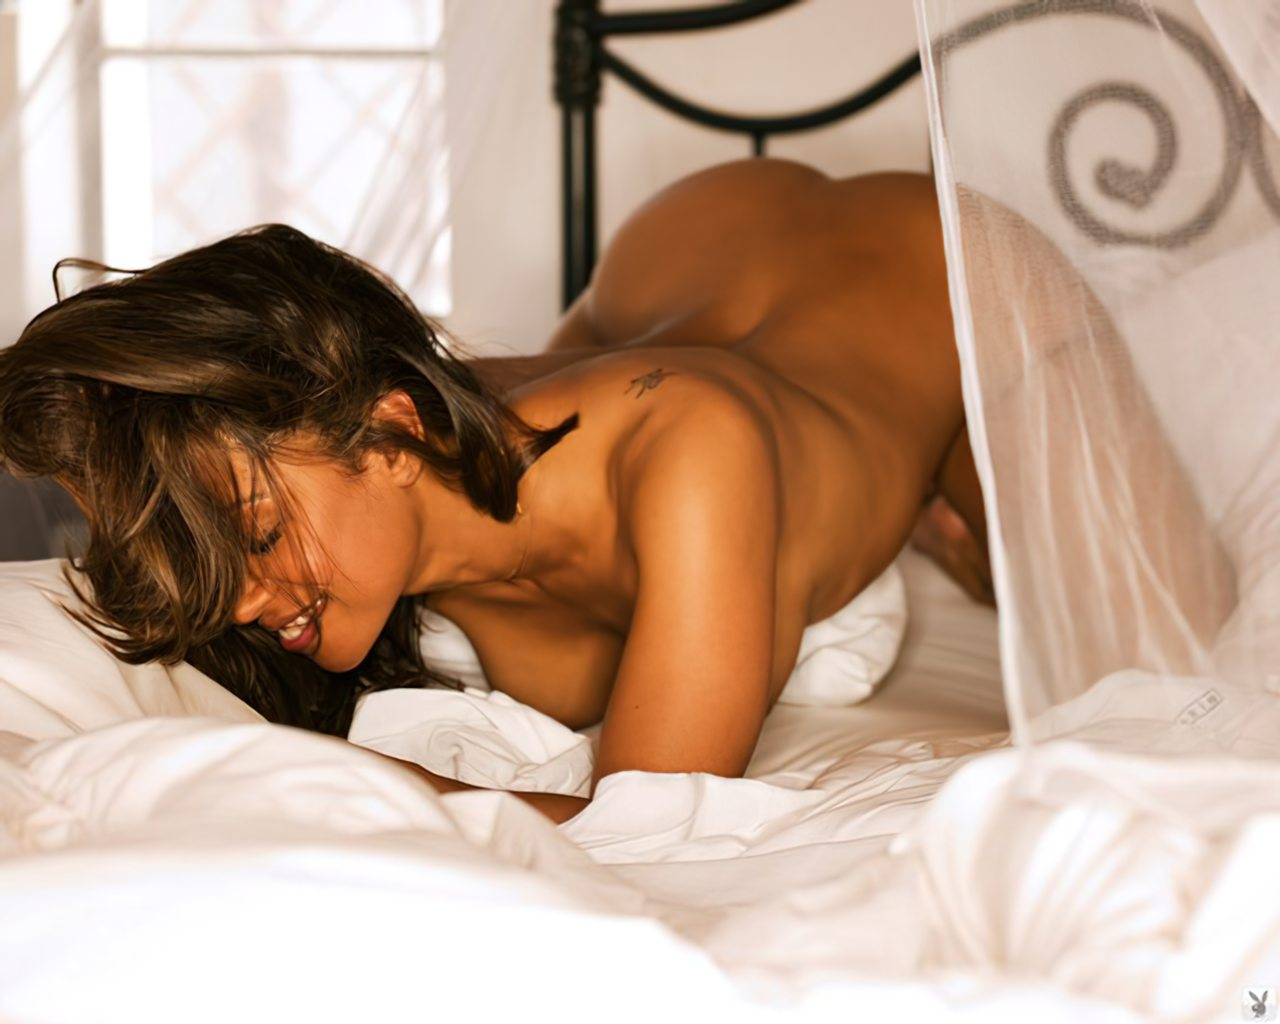 Stacy dash escenas de sexo